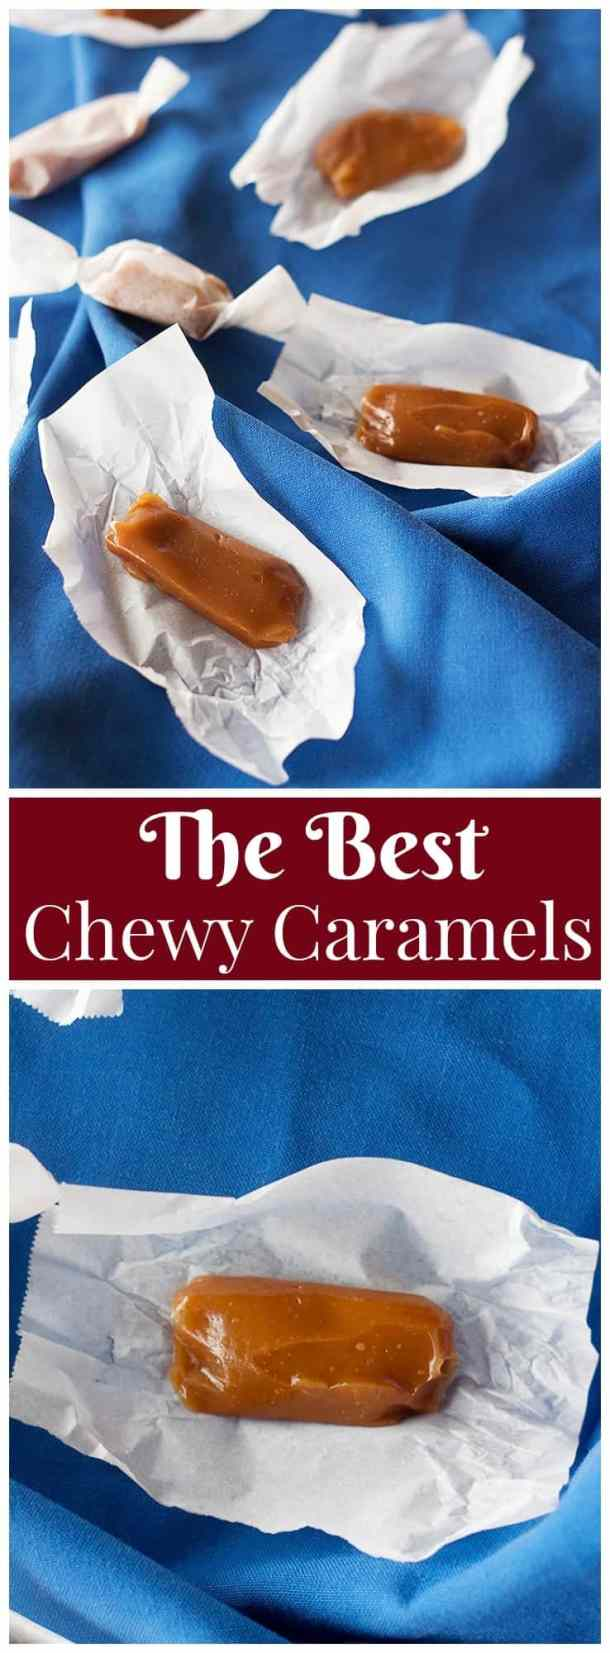 Use this Chewy Caramel Recipe with my tips and tricks this holiday season. These tiny treats are easy to make and they're great gifts for everyone.